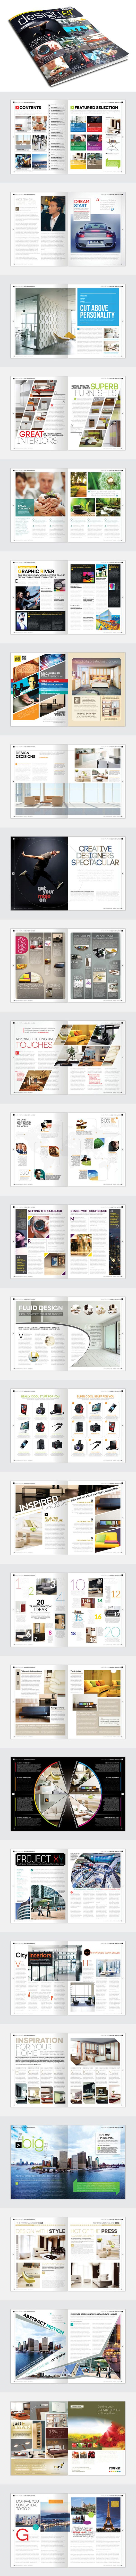 Creative magazine layouts #grid #layout #design #designinspiration #inspiration #creative #creativelayout